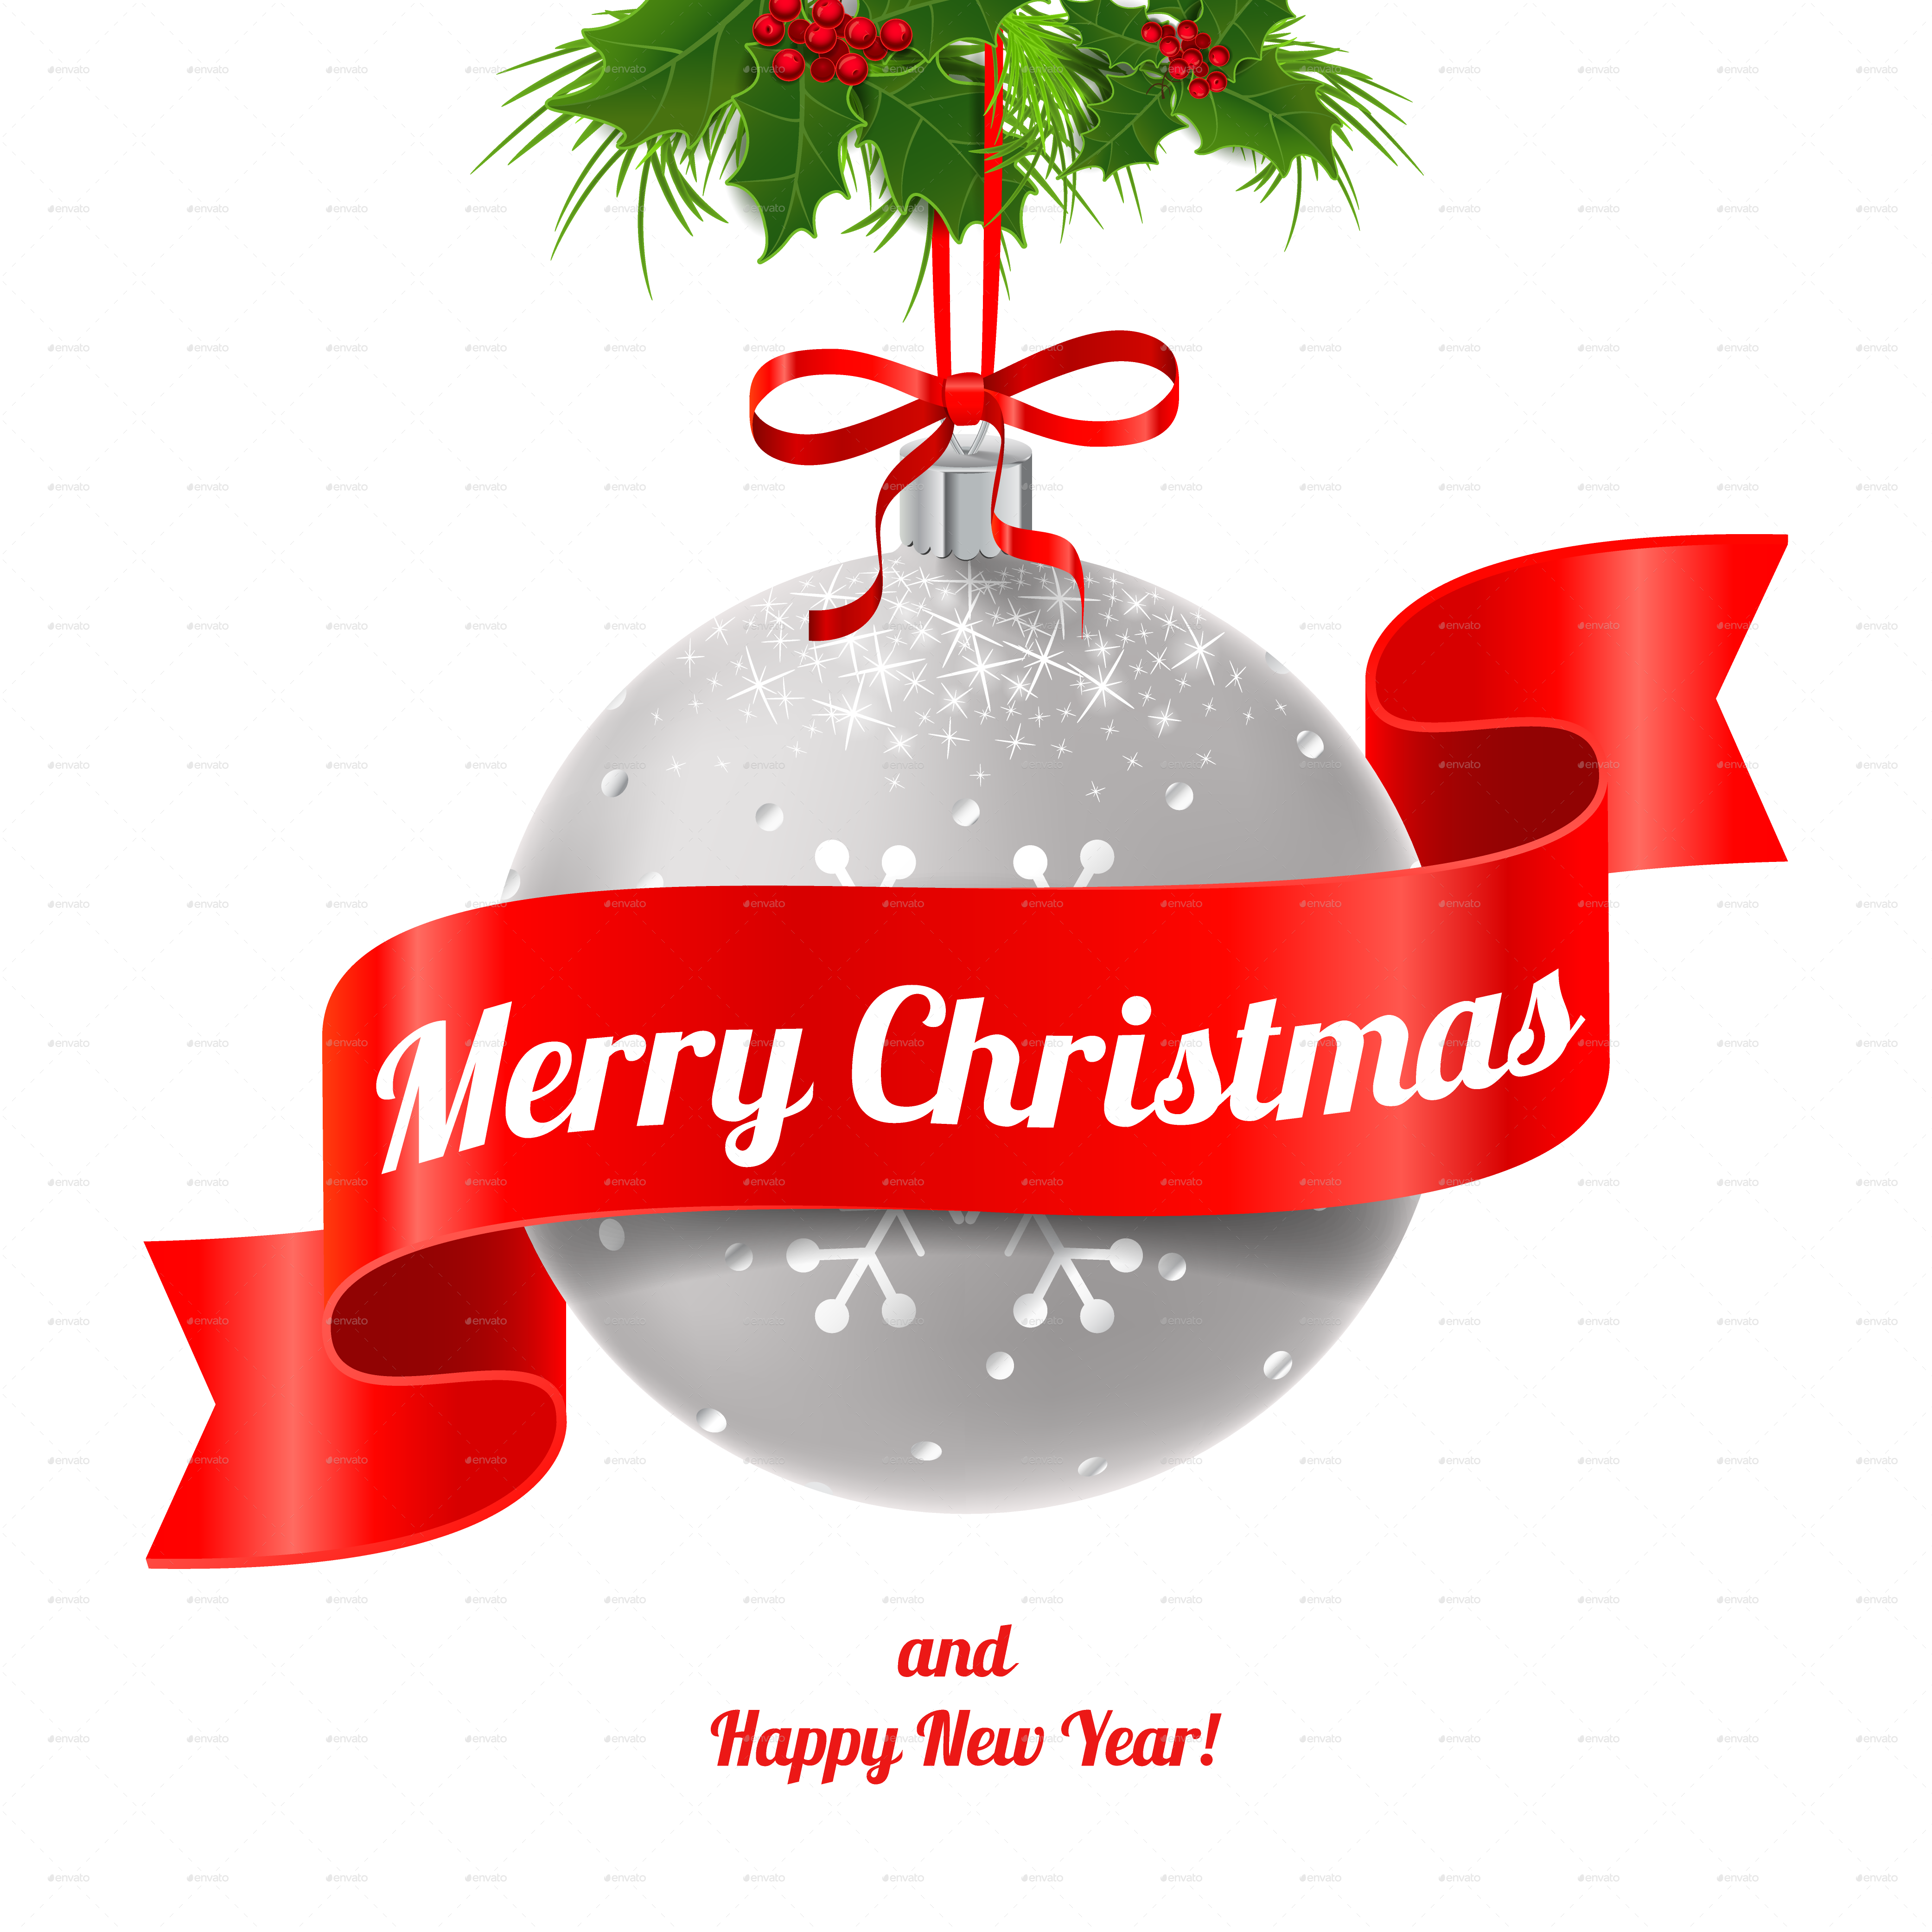 Merry Christmas and Happy New Year. by artleska   GraphicRiver